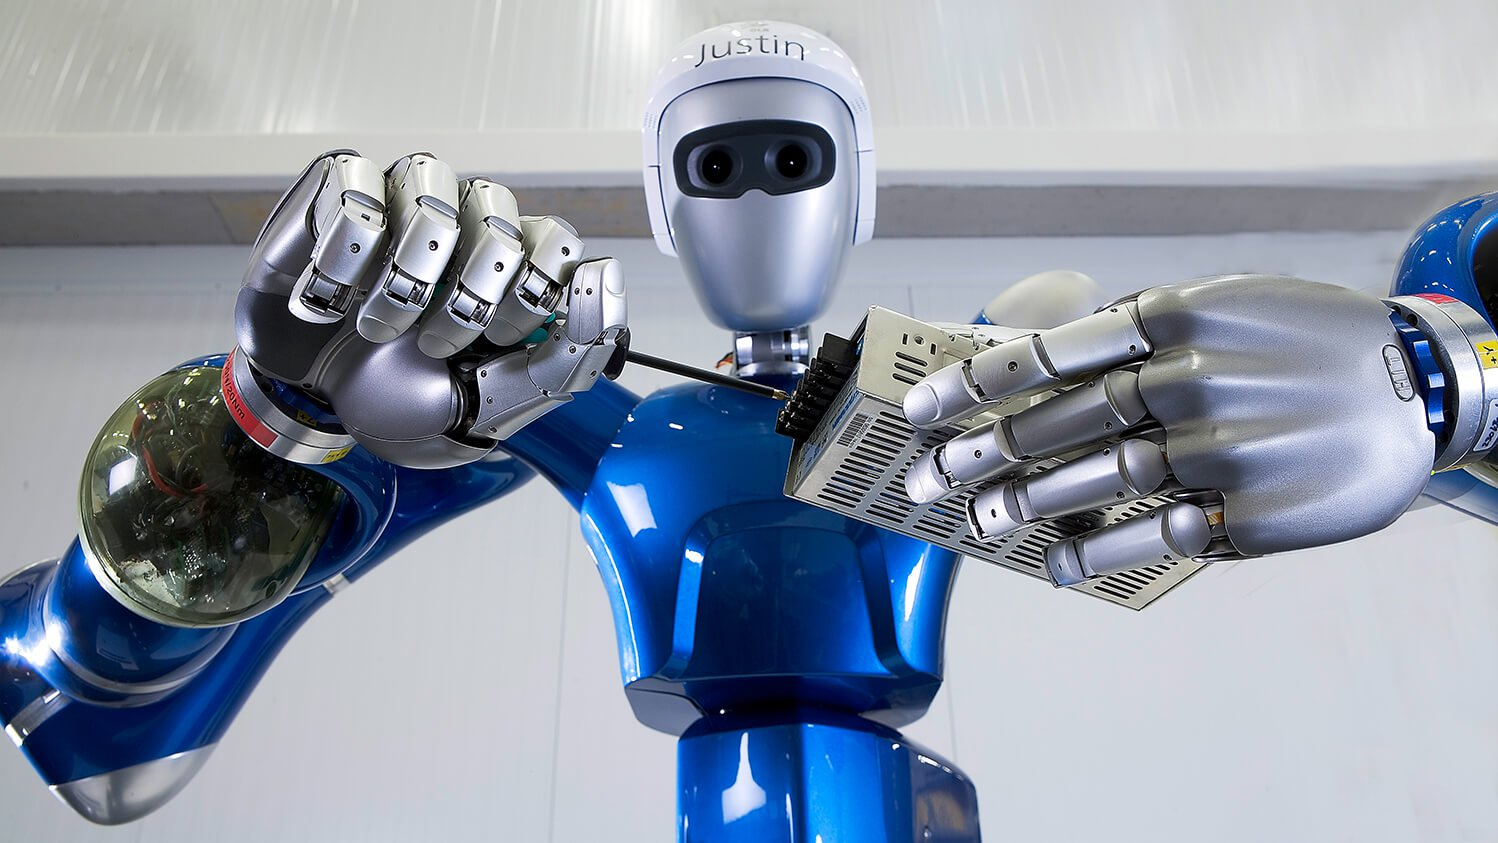 What is an anthropomorphic robot, and why is their popularity growing?